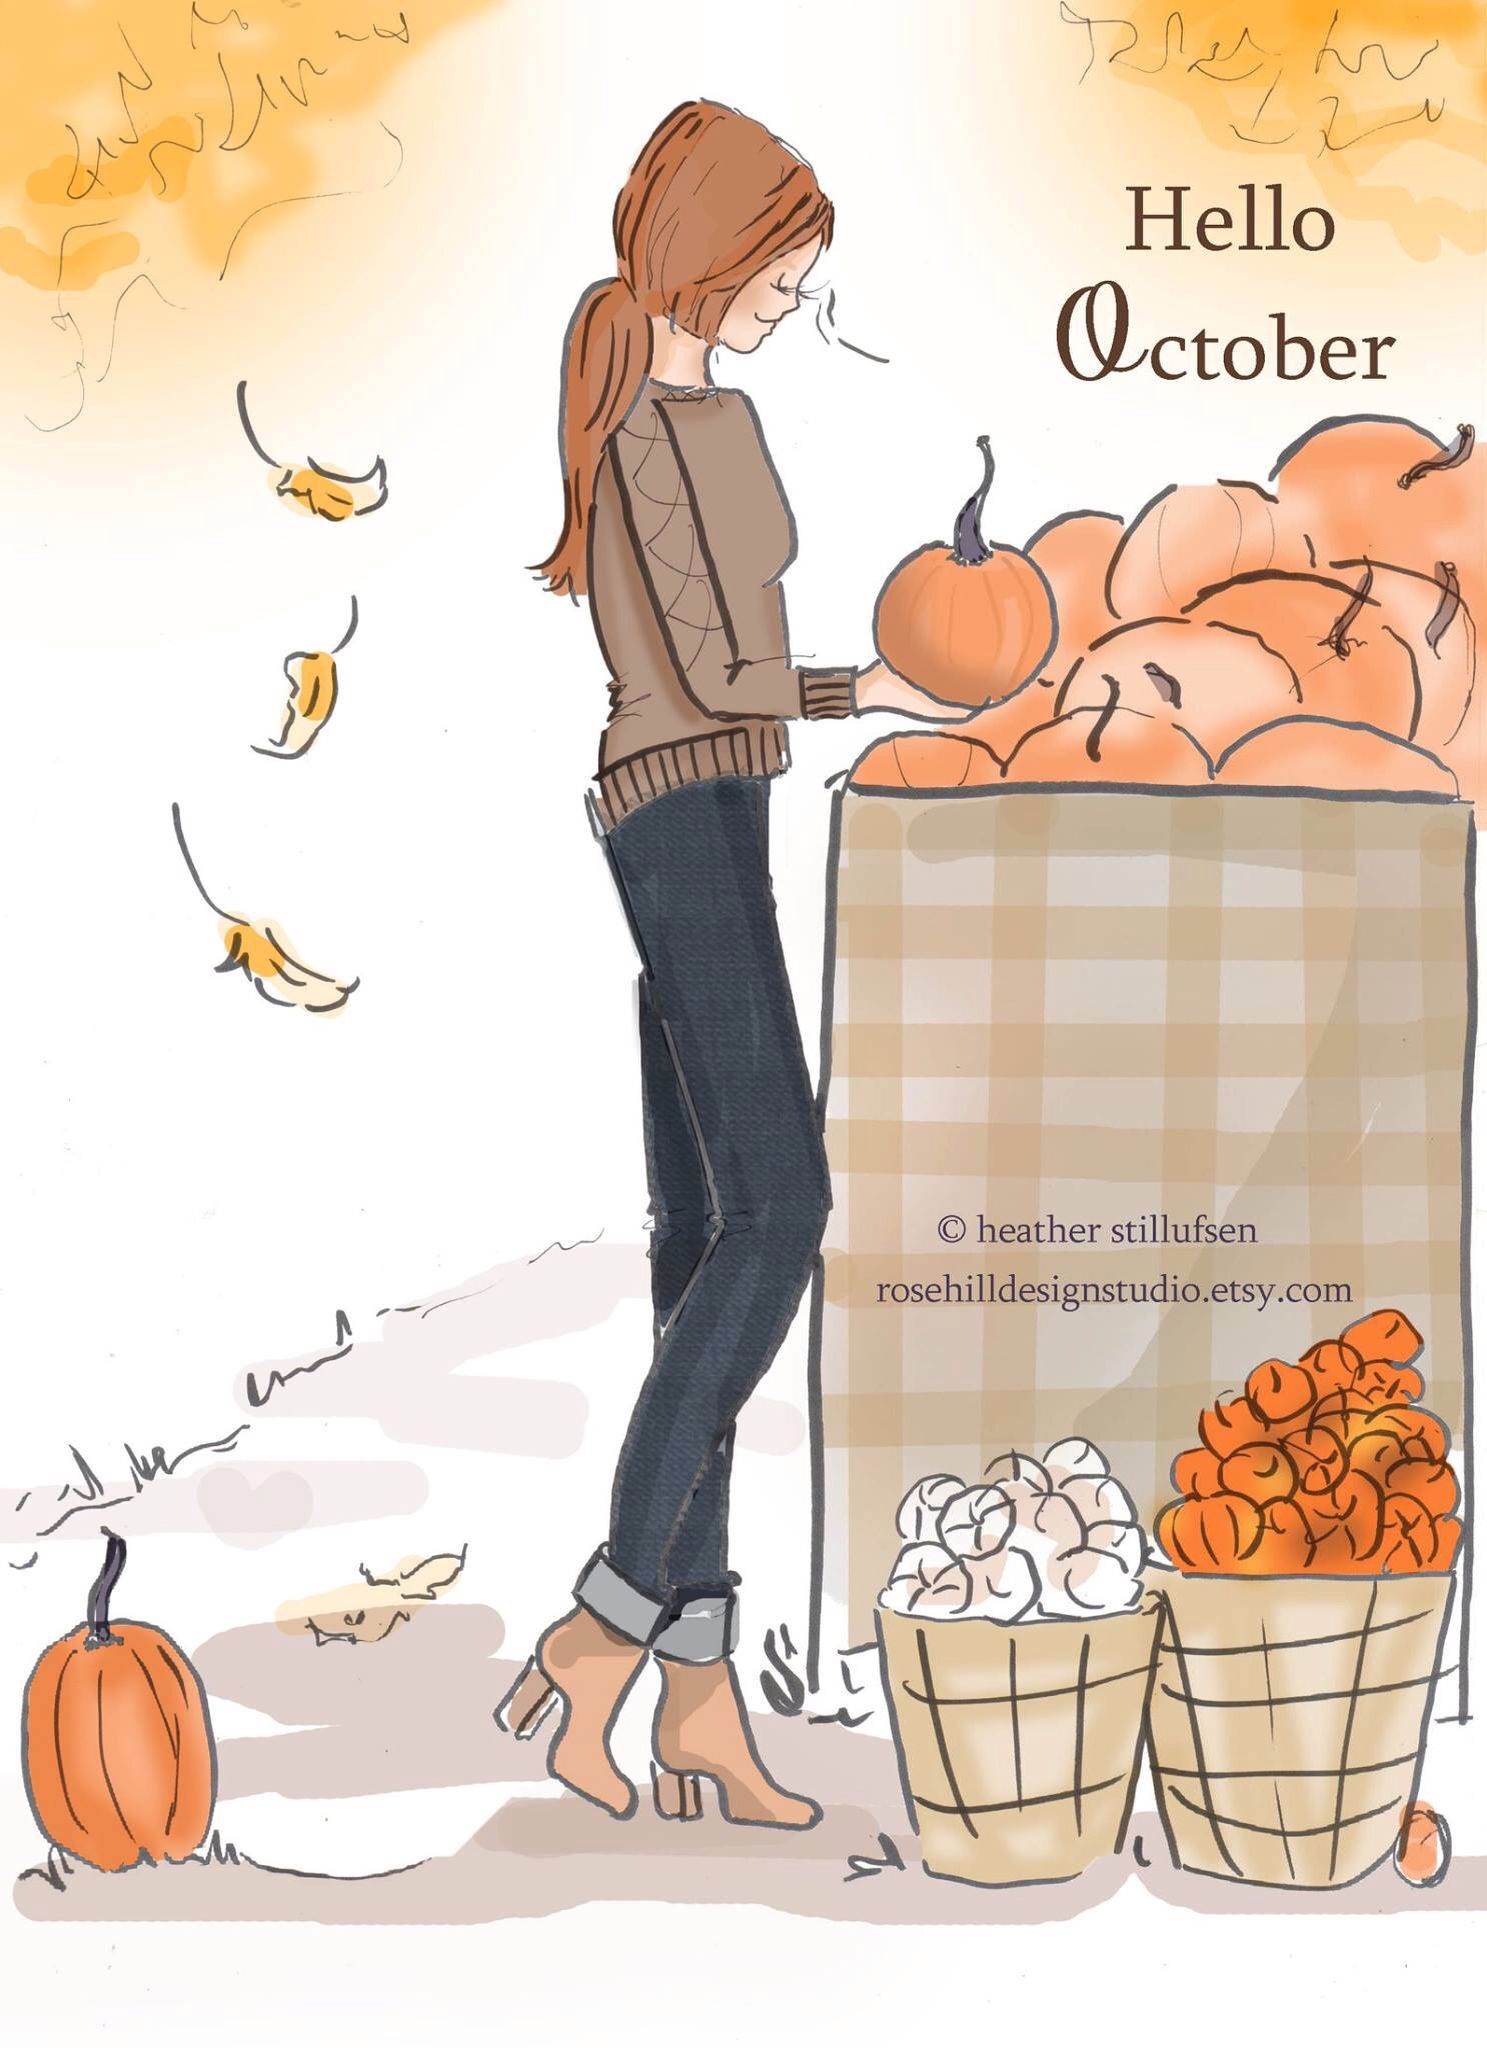 Rose Hill Designs October Heather stillufsen, Rose